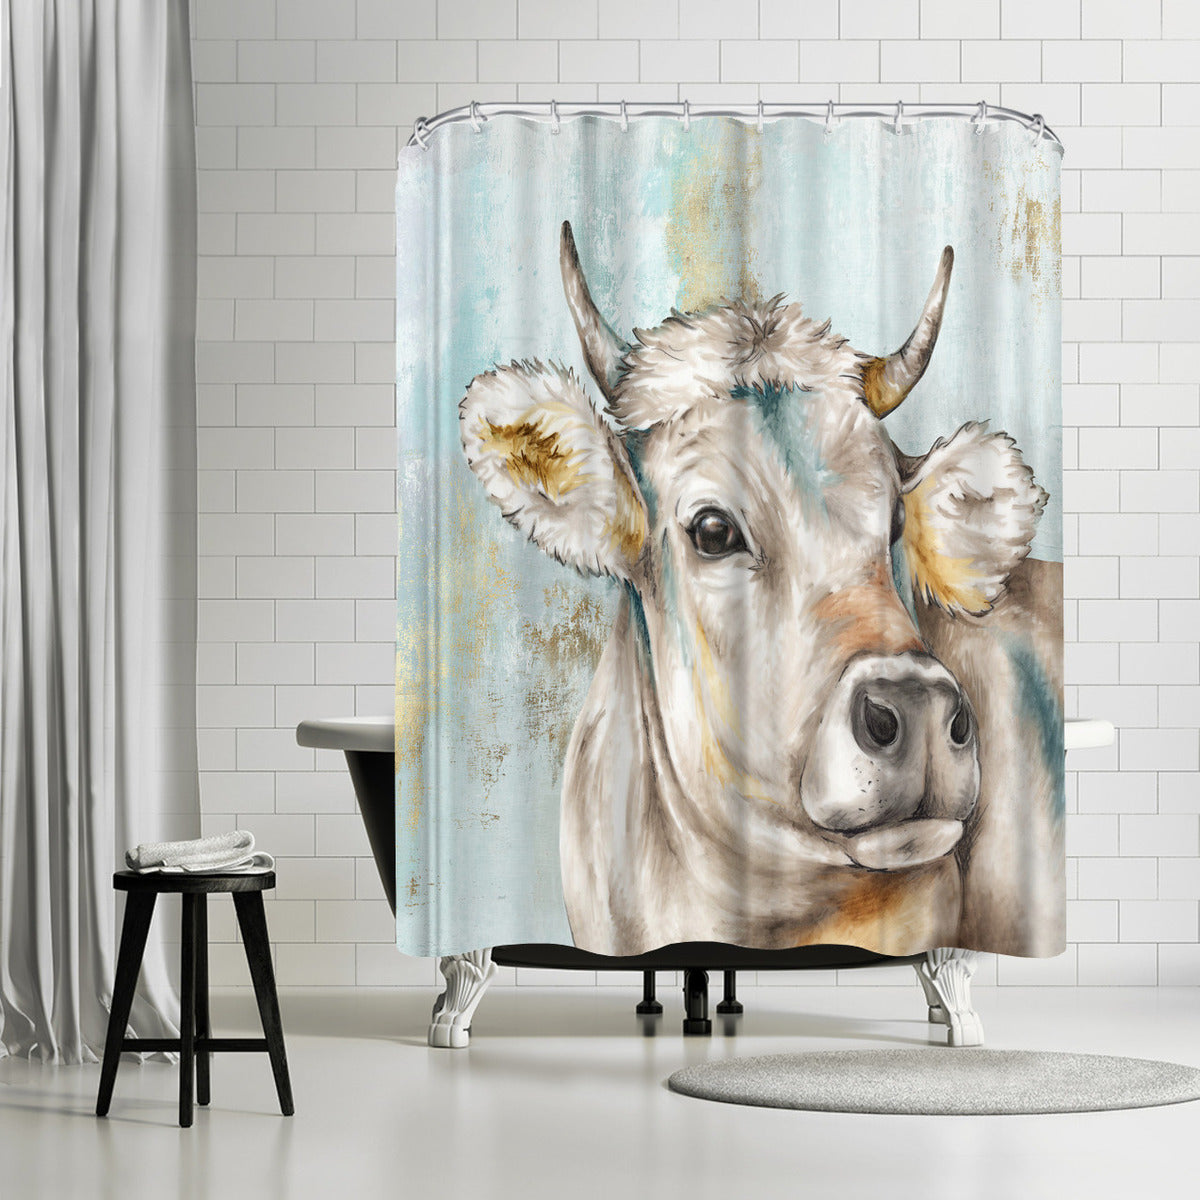 Headstrong Cow I by PI Creative Art Shower Curtain - Shower Curtain - Americanflat